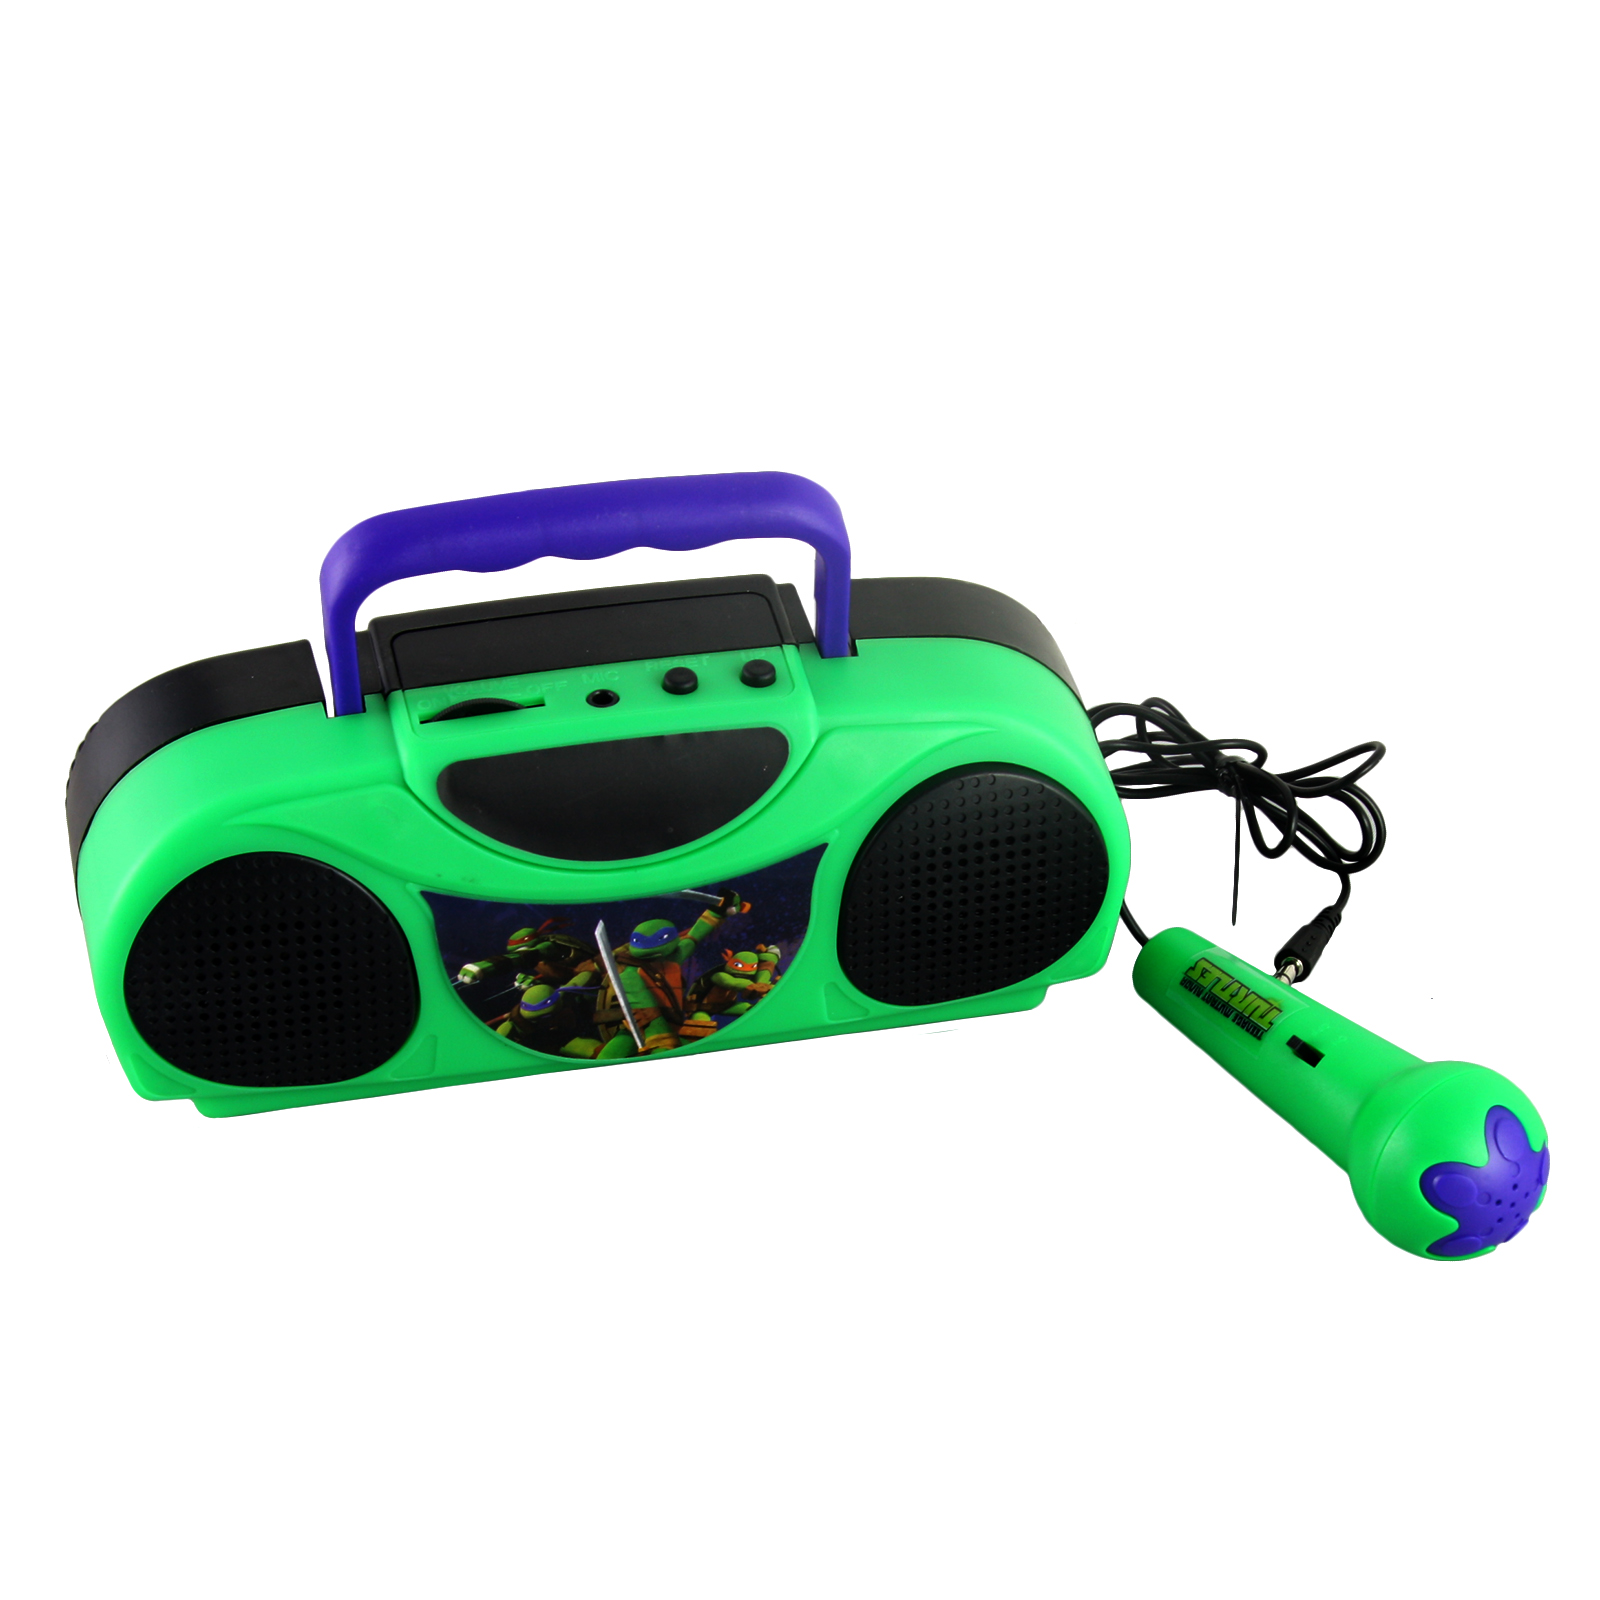 Nickelodeon 16365 Teenage Mutant Ninja Turtles Portable Radio Karaoke Kit